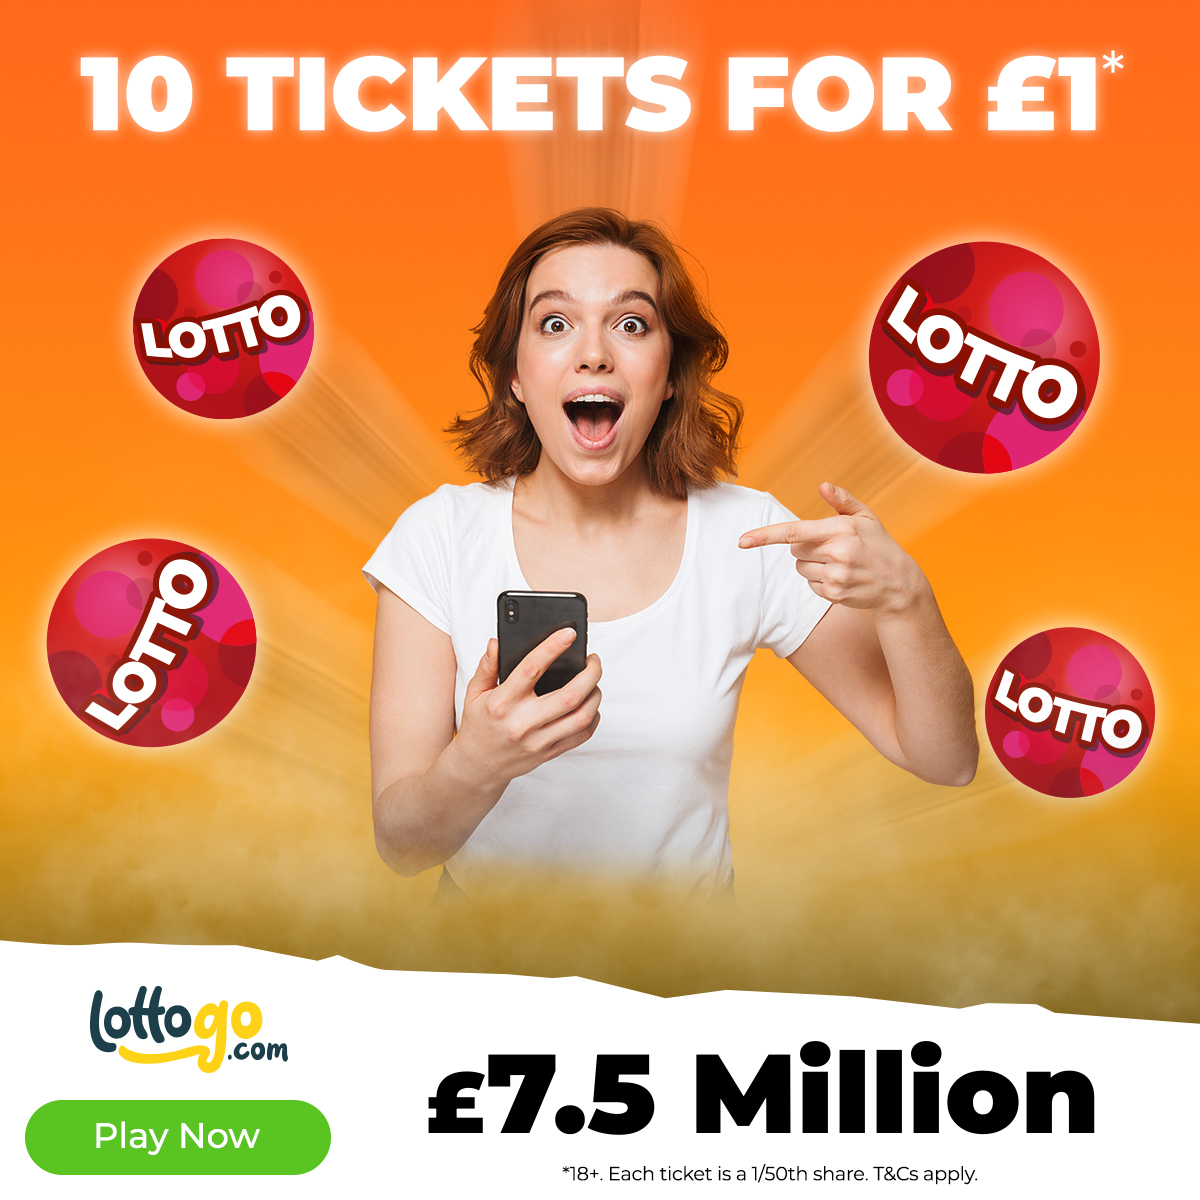 Lotto 10 Tickets for £1* - Play Now